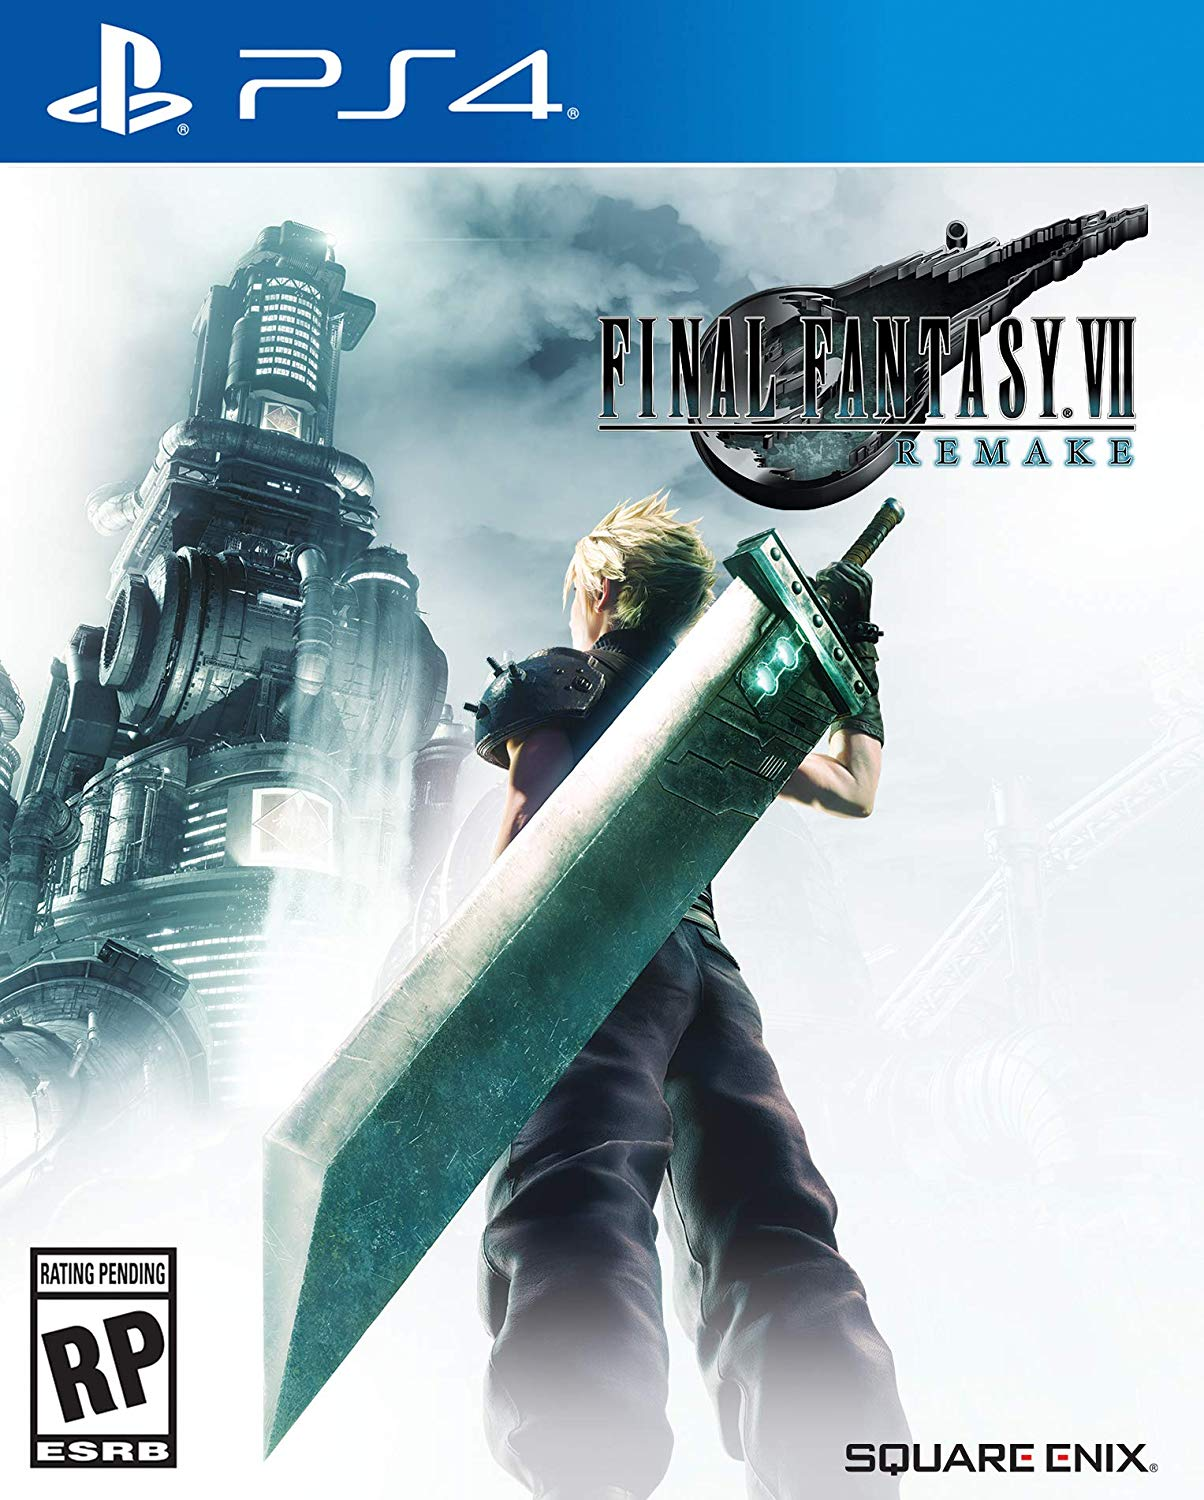 final-fantasy-7-remake-boxart.jpg